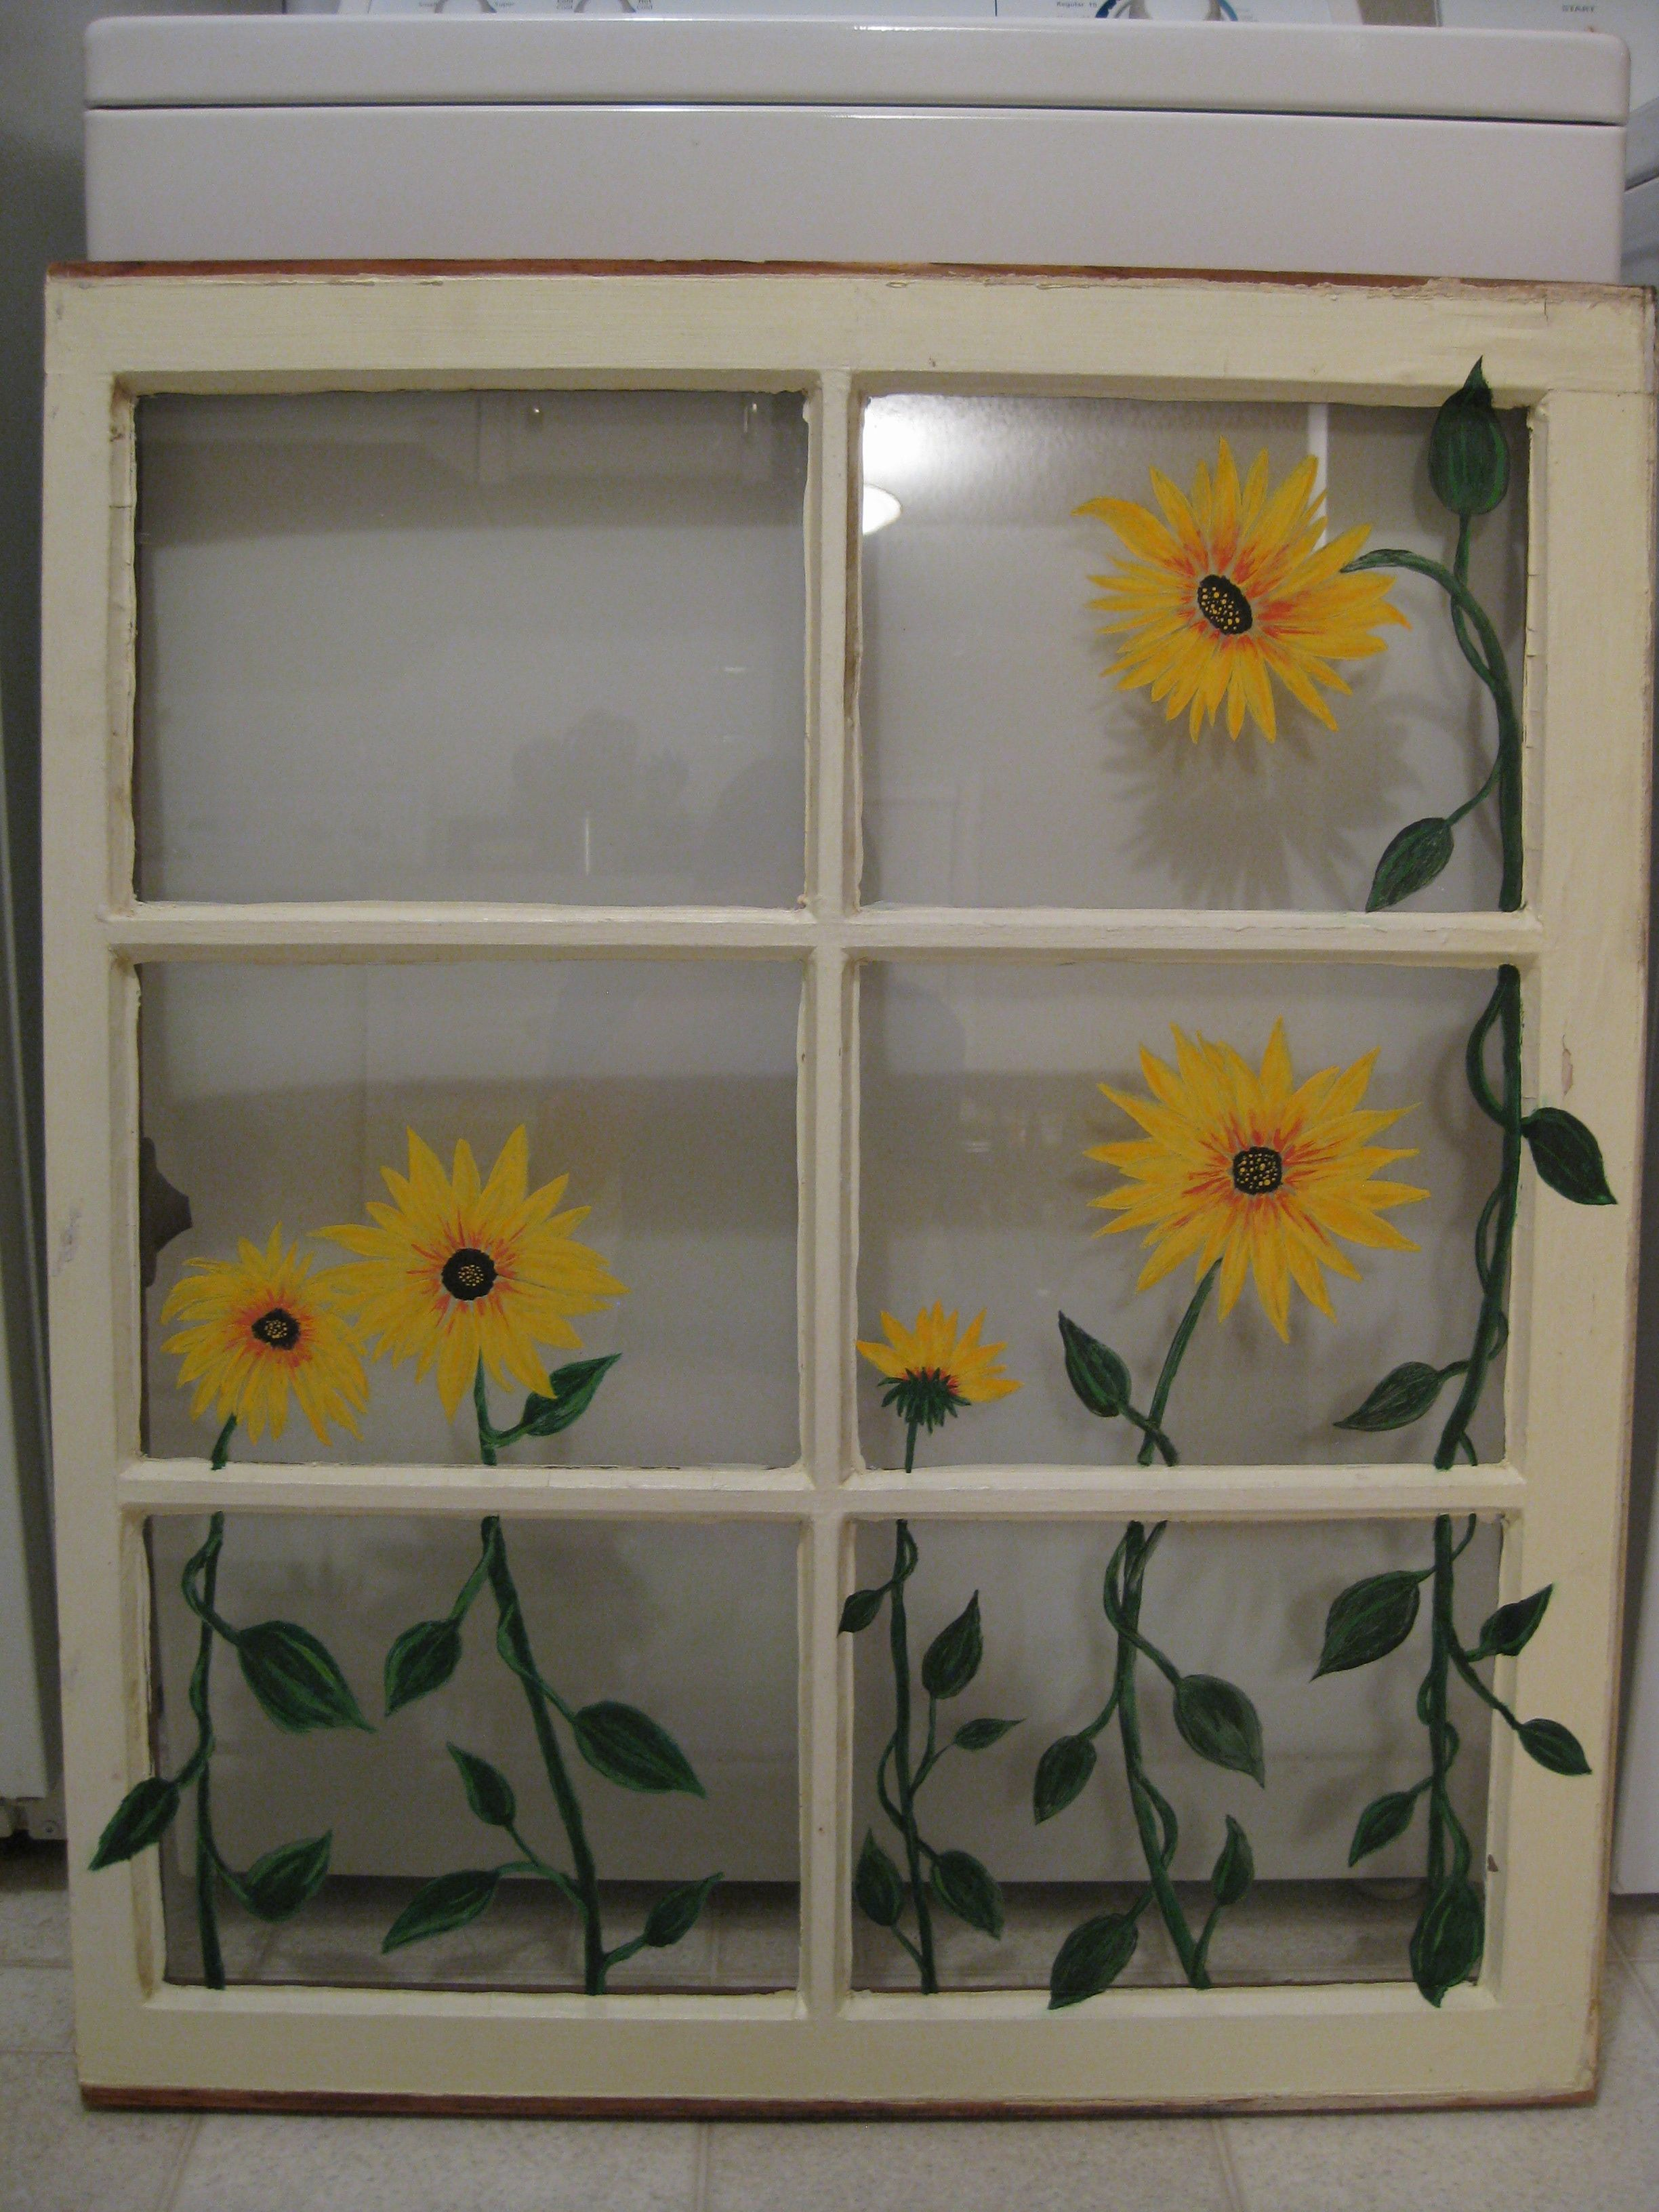 Pin By Heather Katzenmeier On My Projects Window Crafts Old Window Crafts Window Painting